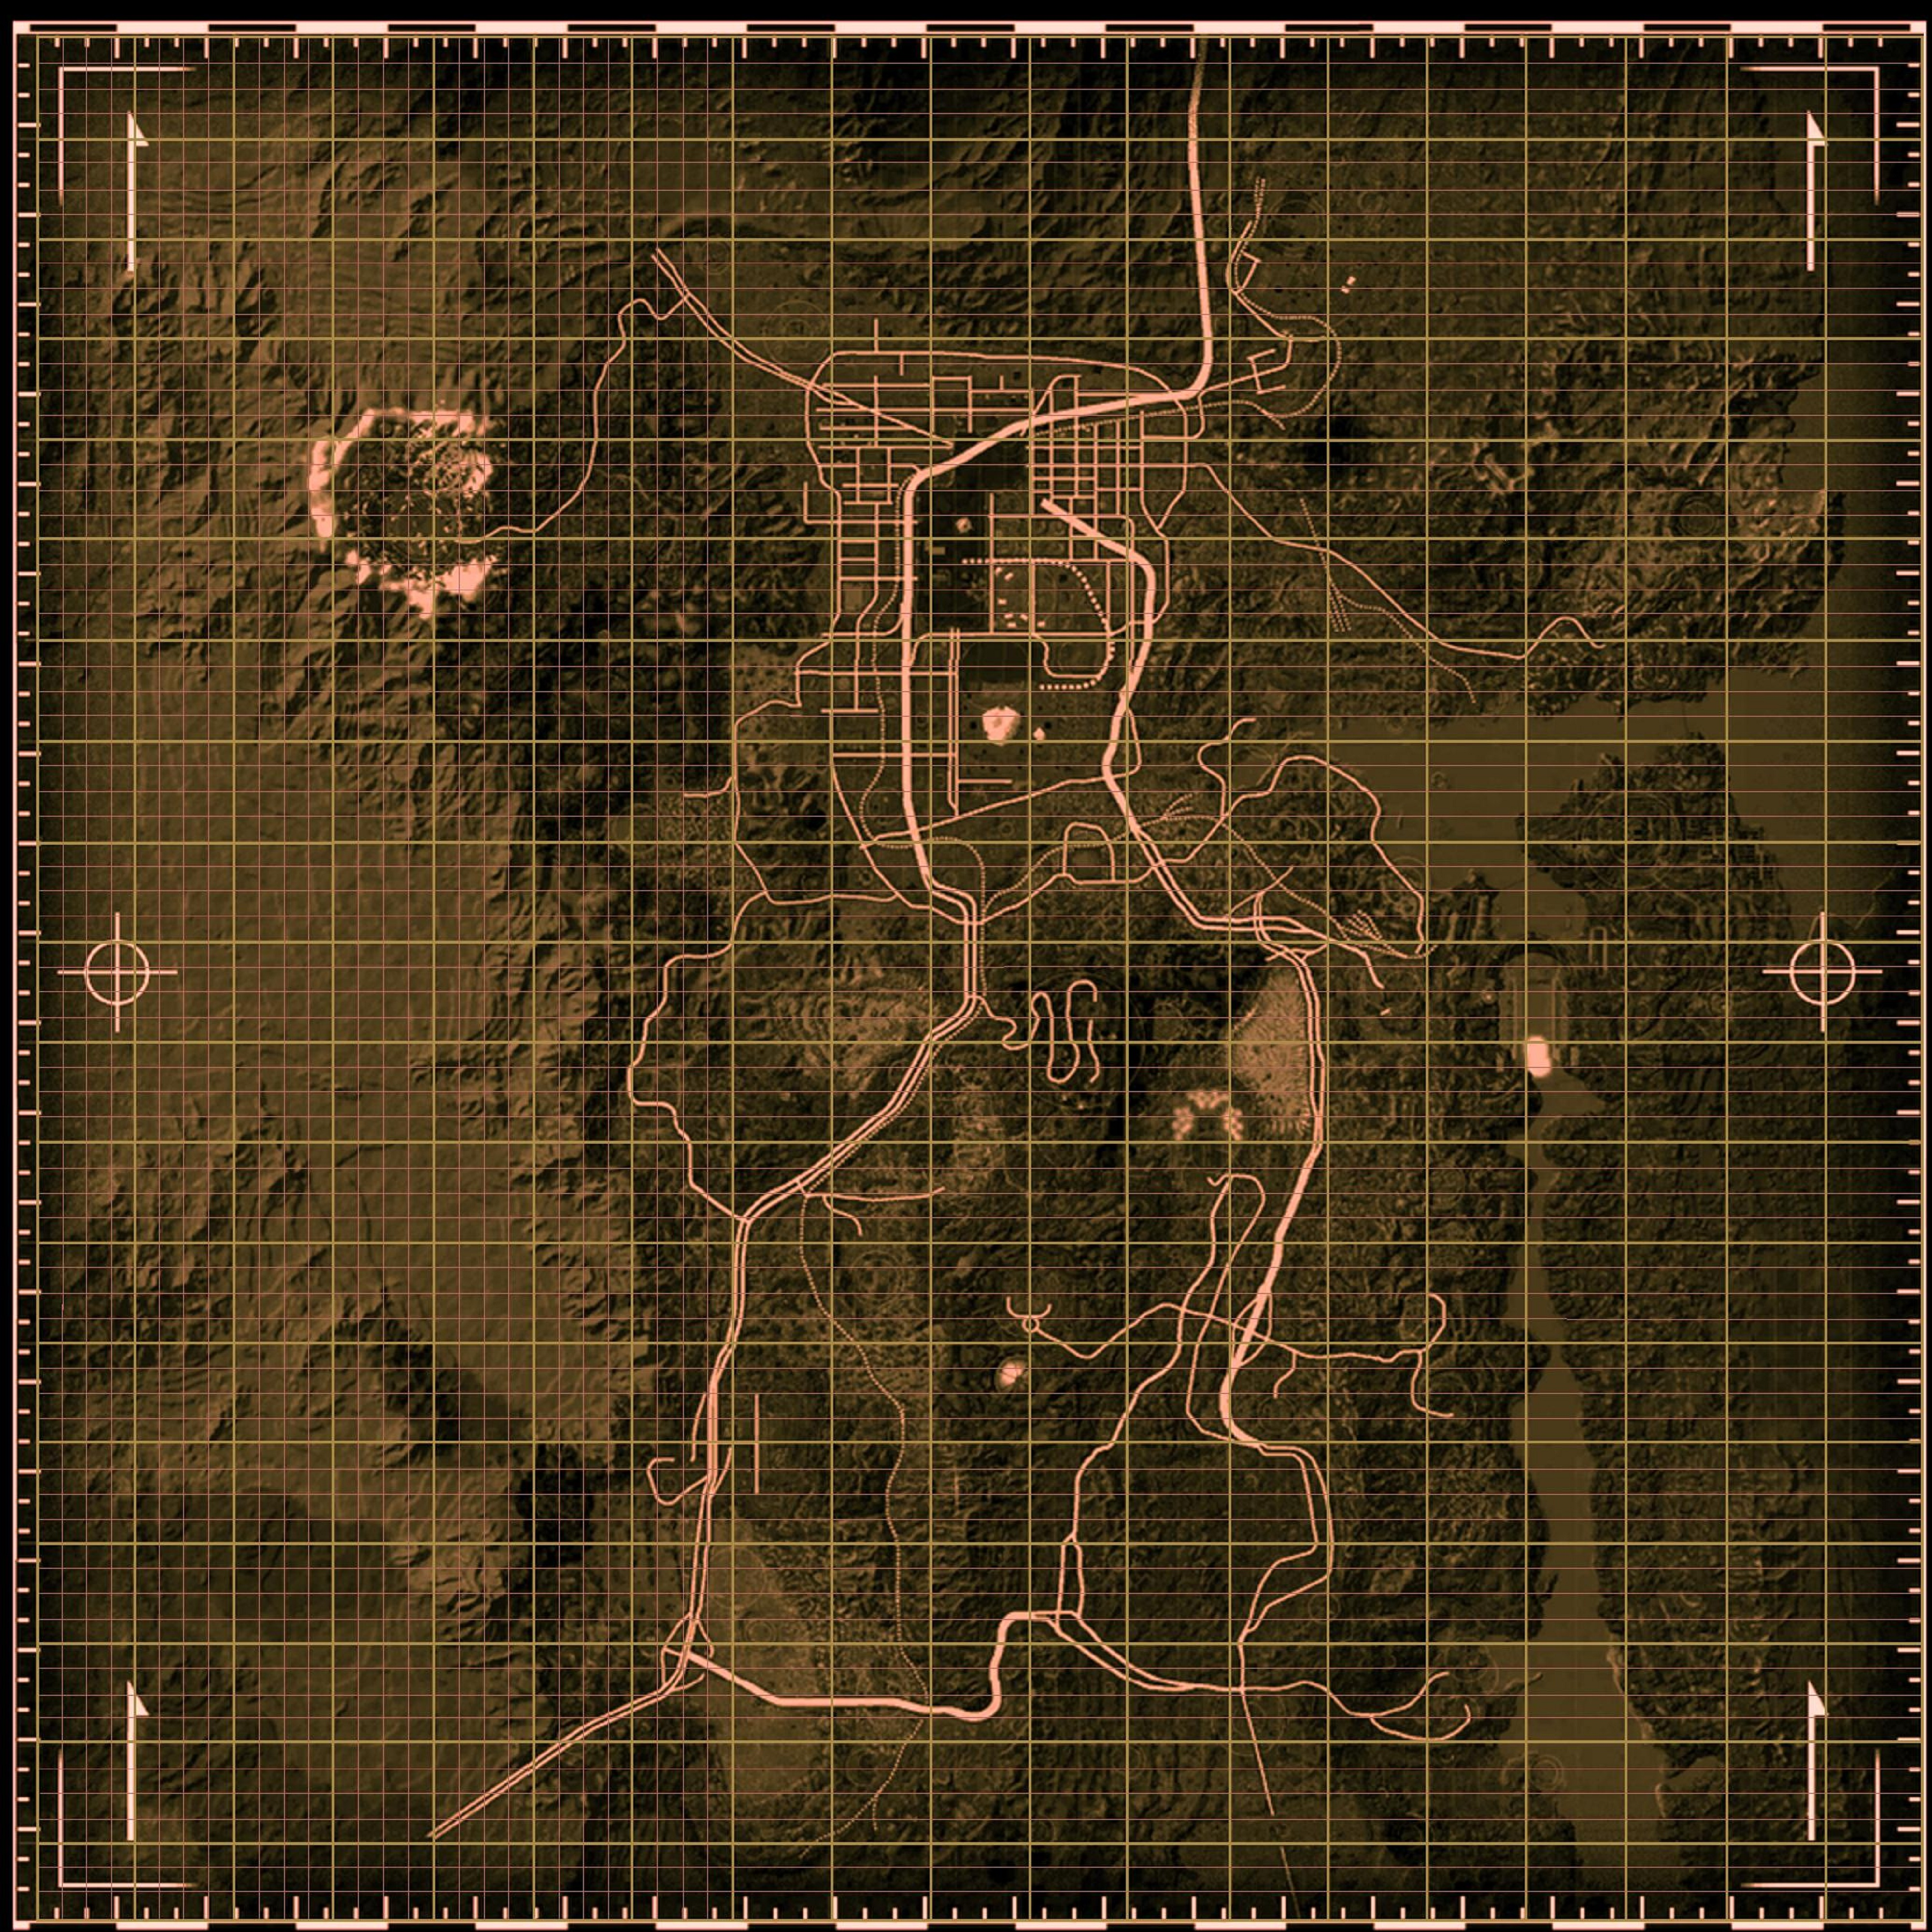 Talk Fallout New Vegas map The Fallout wiki Fallout New Vegas and more